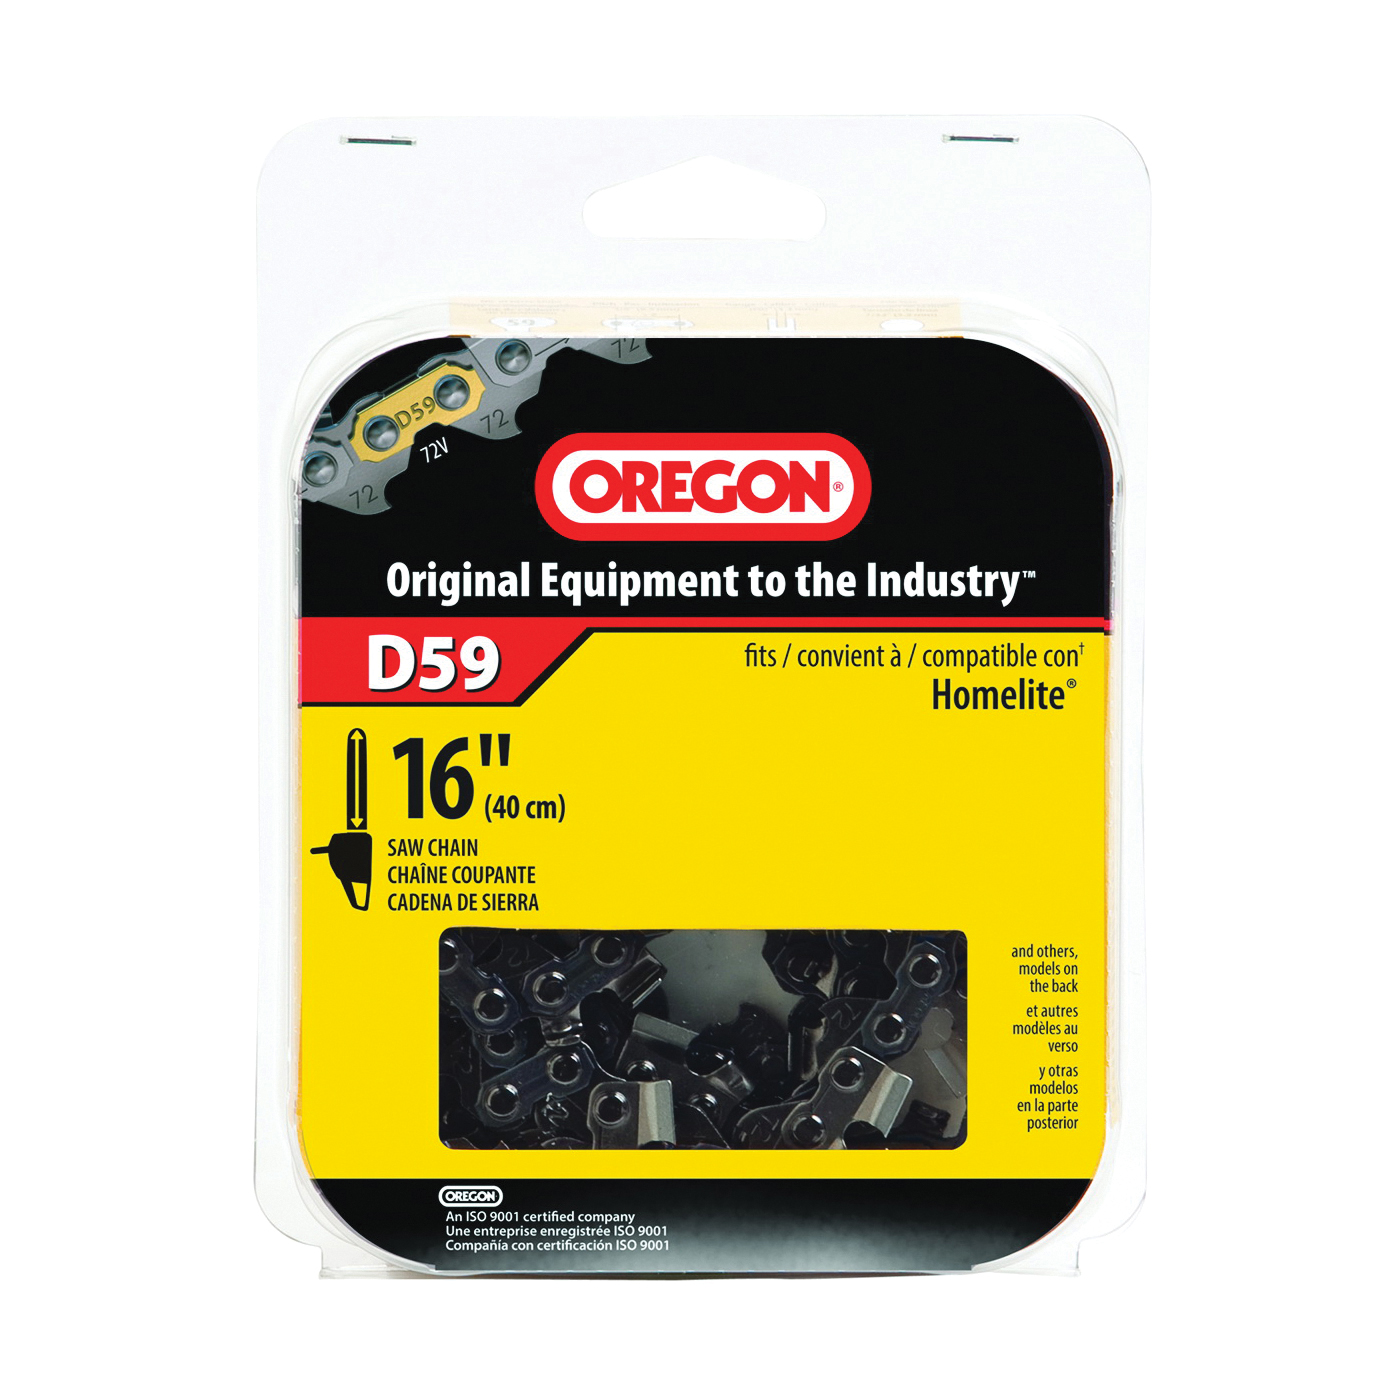 Picture of Oregon D59 Chainsaw Chain, 16 in L Bar, 0.05 Gauge, 3/8 in TPI/Pitch, 59 -Link